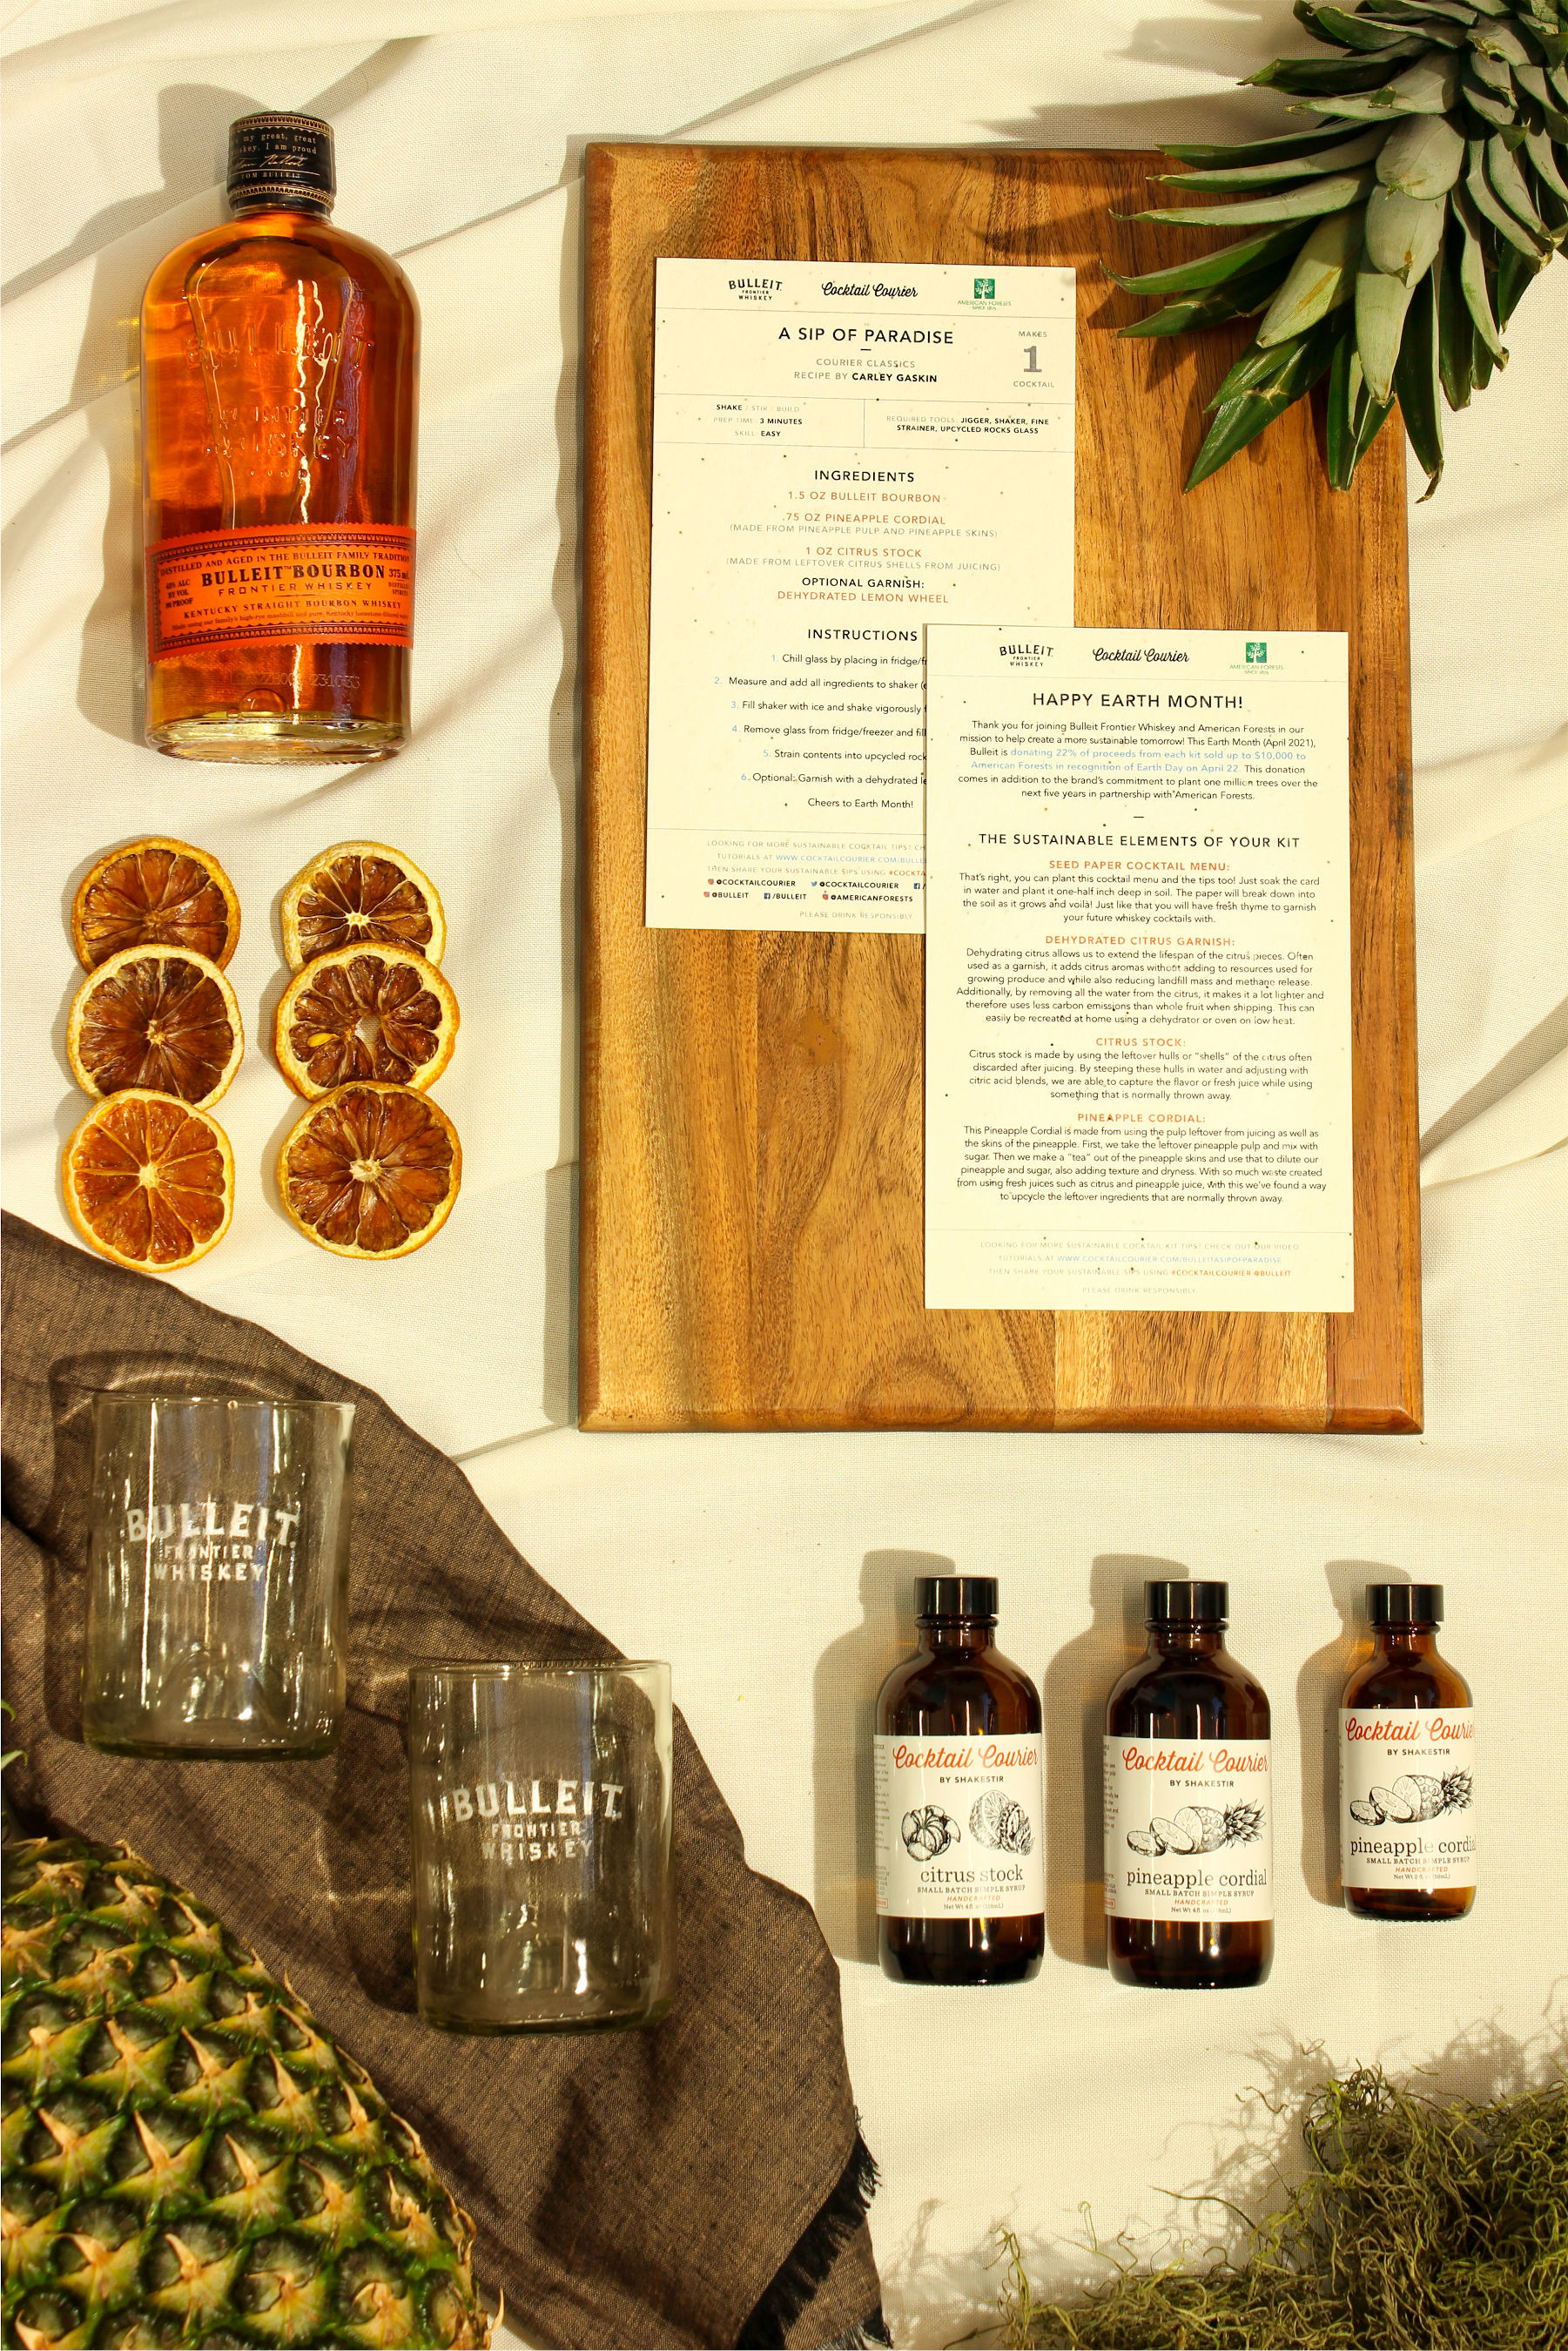 THIS APRIL BULLEIT FRONTIER WHISKEY HAS TEAMED UP WITH AMERICAN FORESTS AND COCKTAIL COURIER TO CREATE A LIMITED-EDITION ECO-FRIENDLY COCKTAIL KIT IN CELEBRATION OF EARTH MONTH AND EARTH DAY ON APRIL 22.